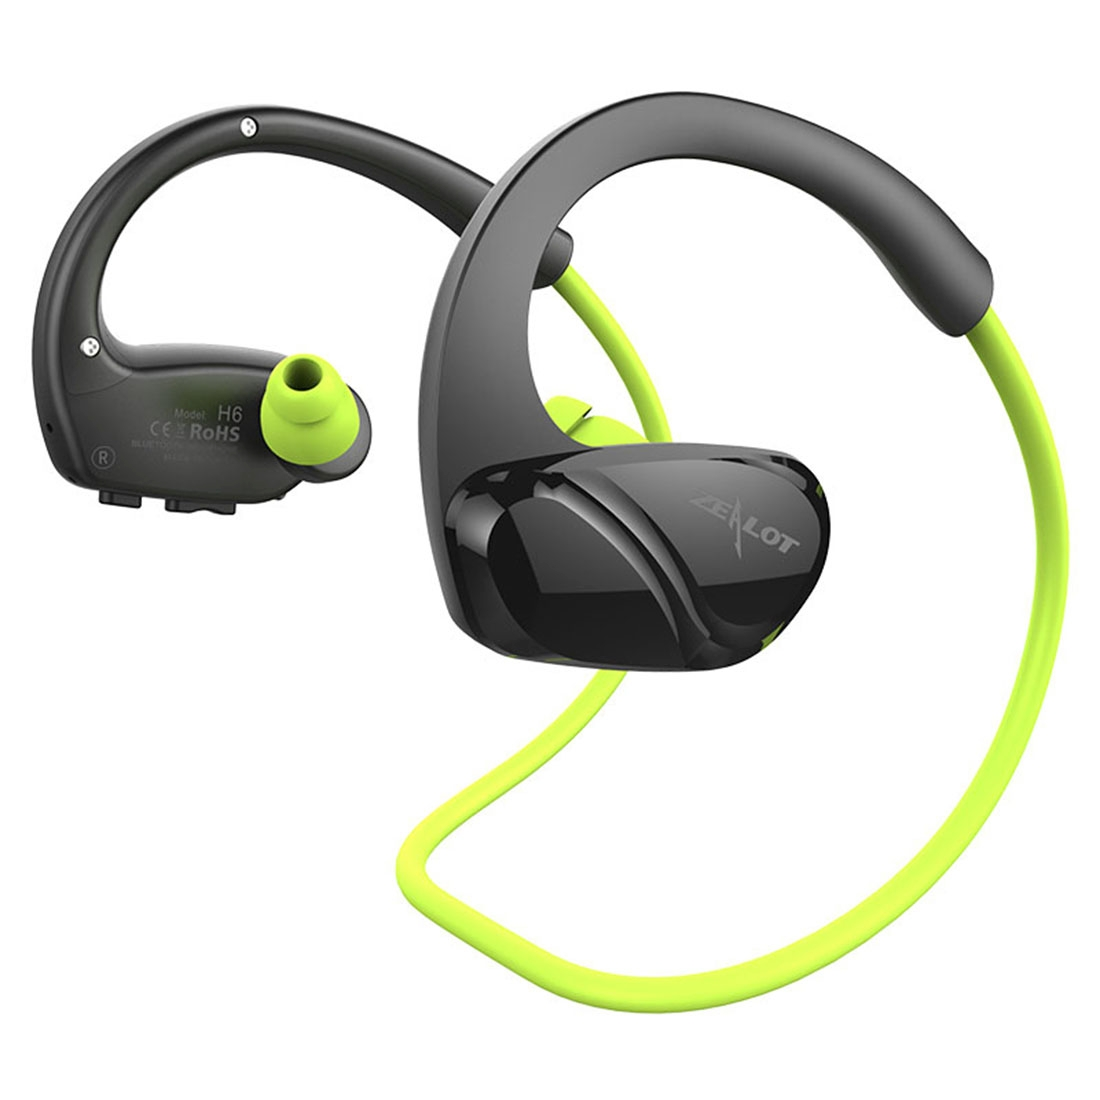 ZEALOT H6 High Quality Stereo HiFi Wireless Neck Sports Bluetooth 4 0  Earphone In-ear Headphone with Microphone, For iPhone & Android Smart  Phones or